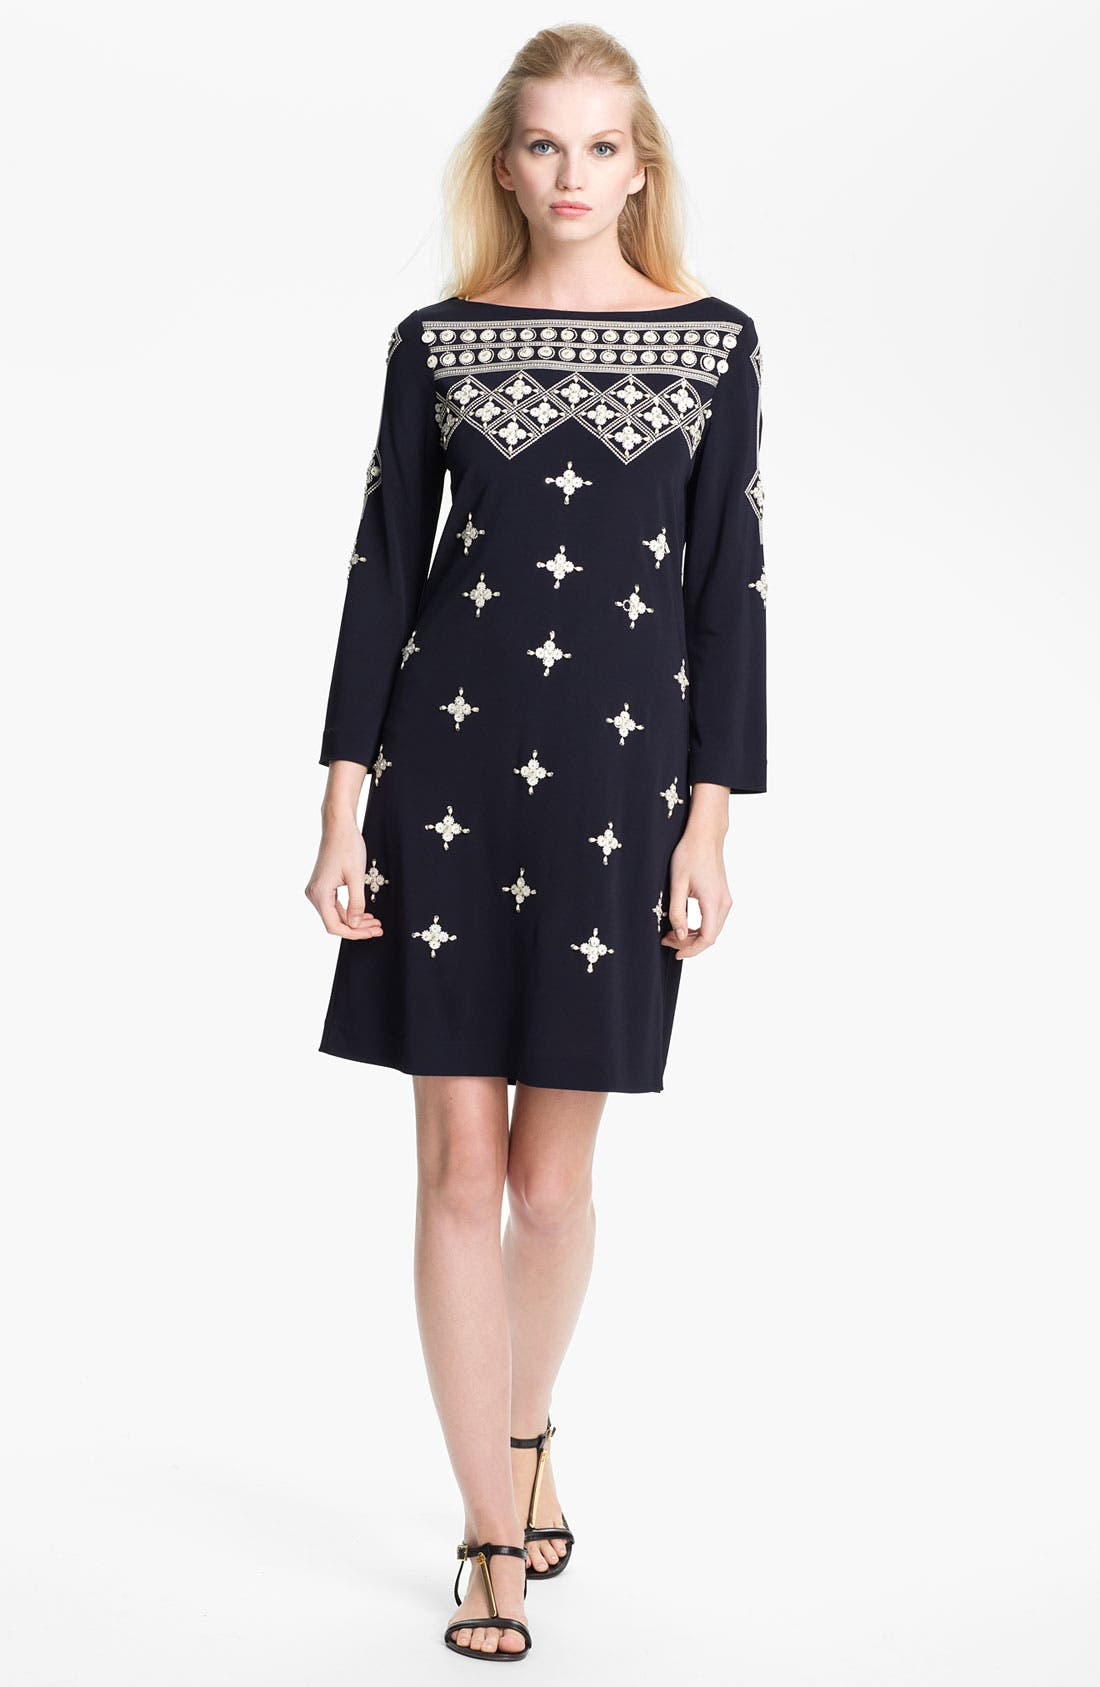 Alternate Image 1 Selected - Tory Burch 'Carleton' Embellished Shift Dress